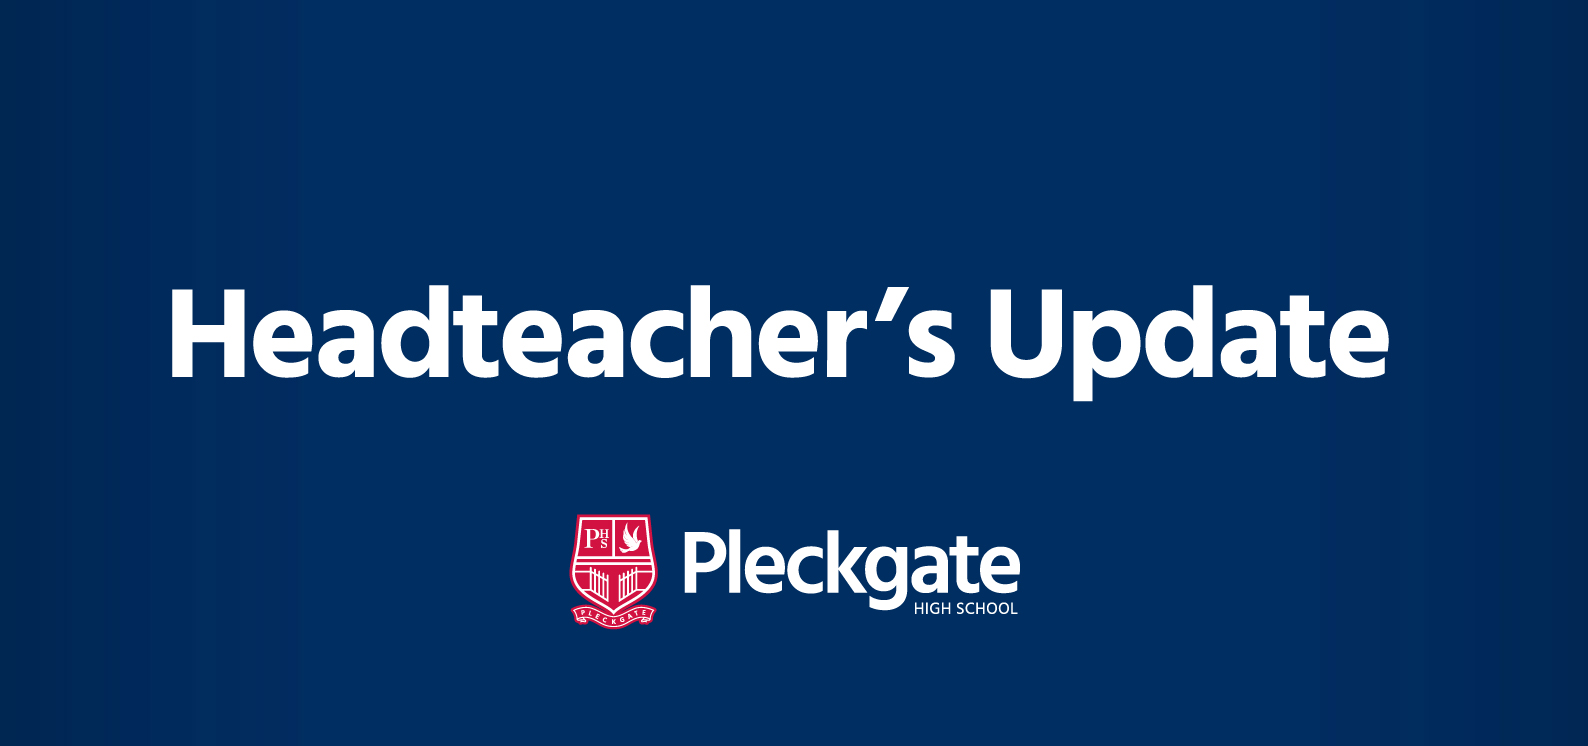 Headteacher's Update – September 2019